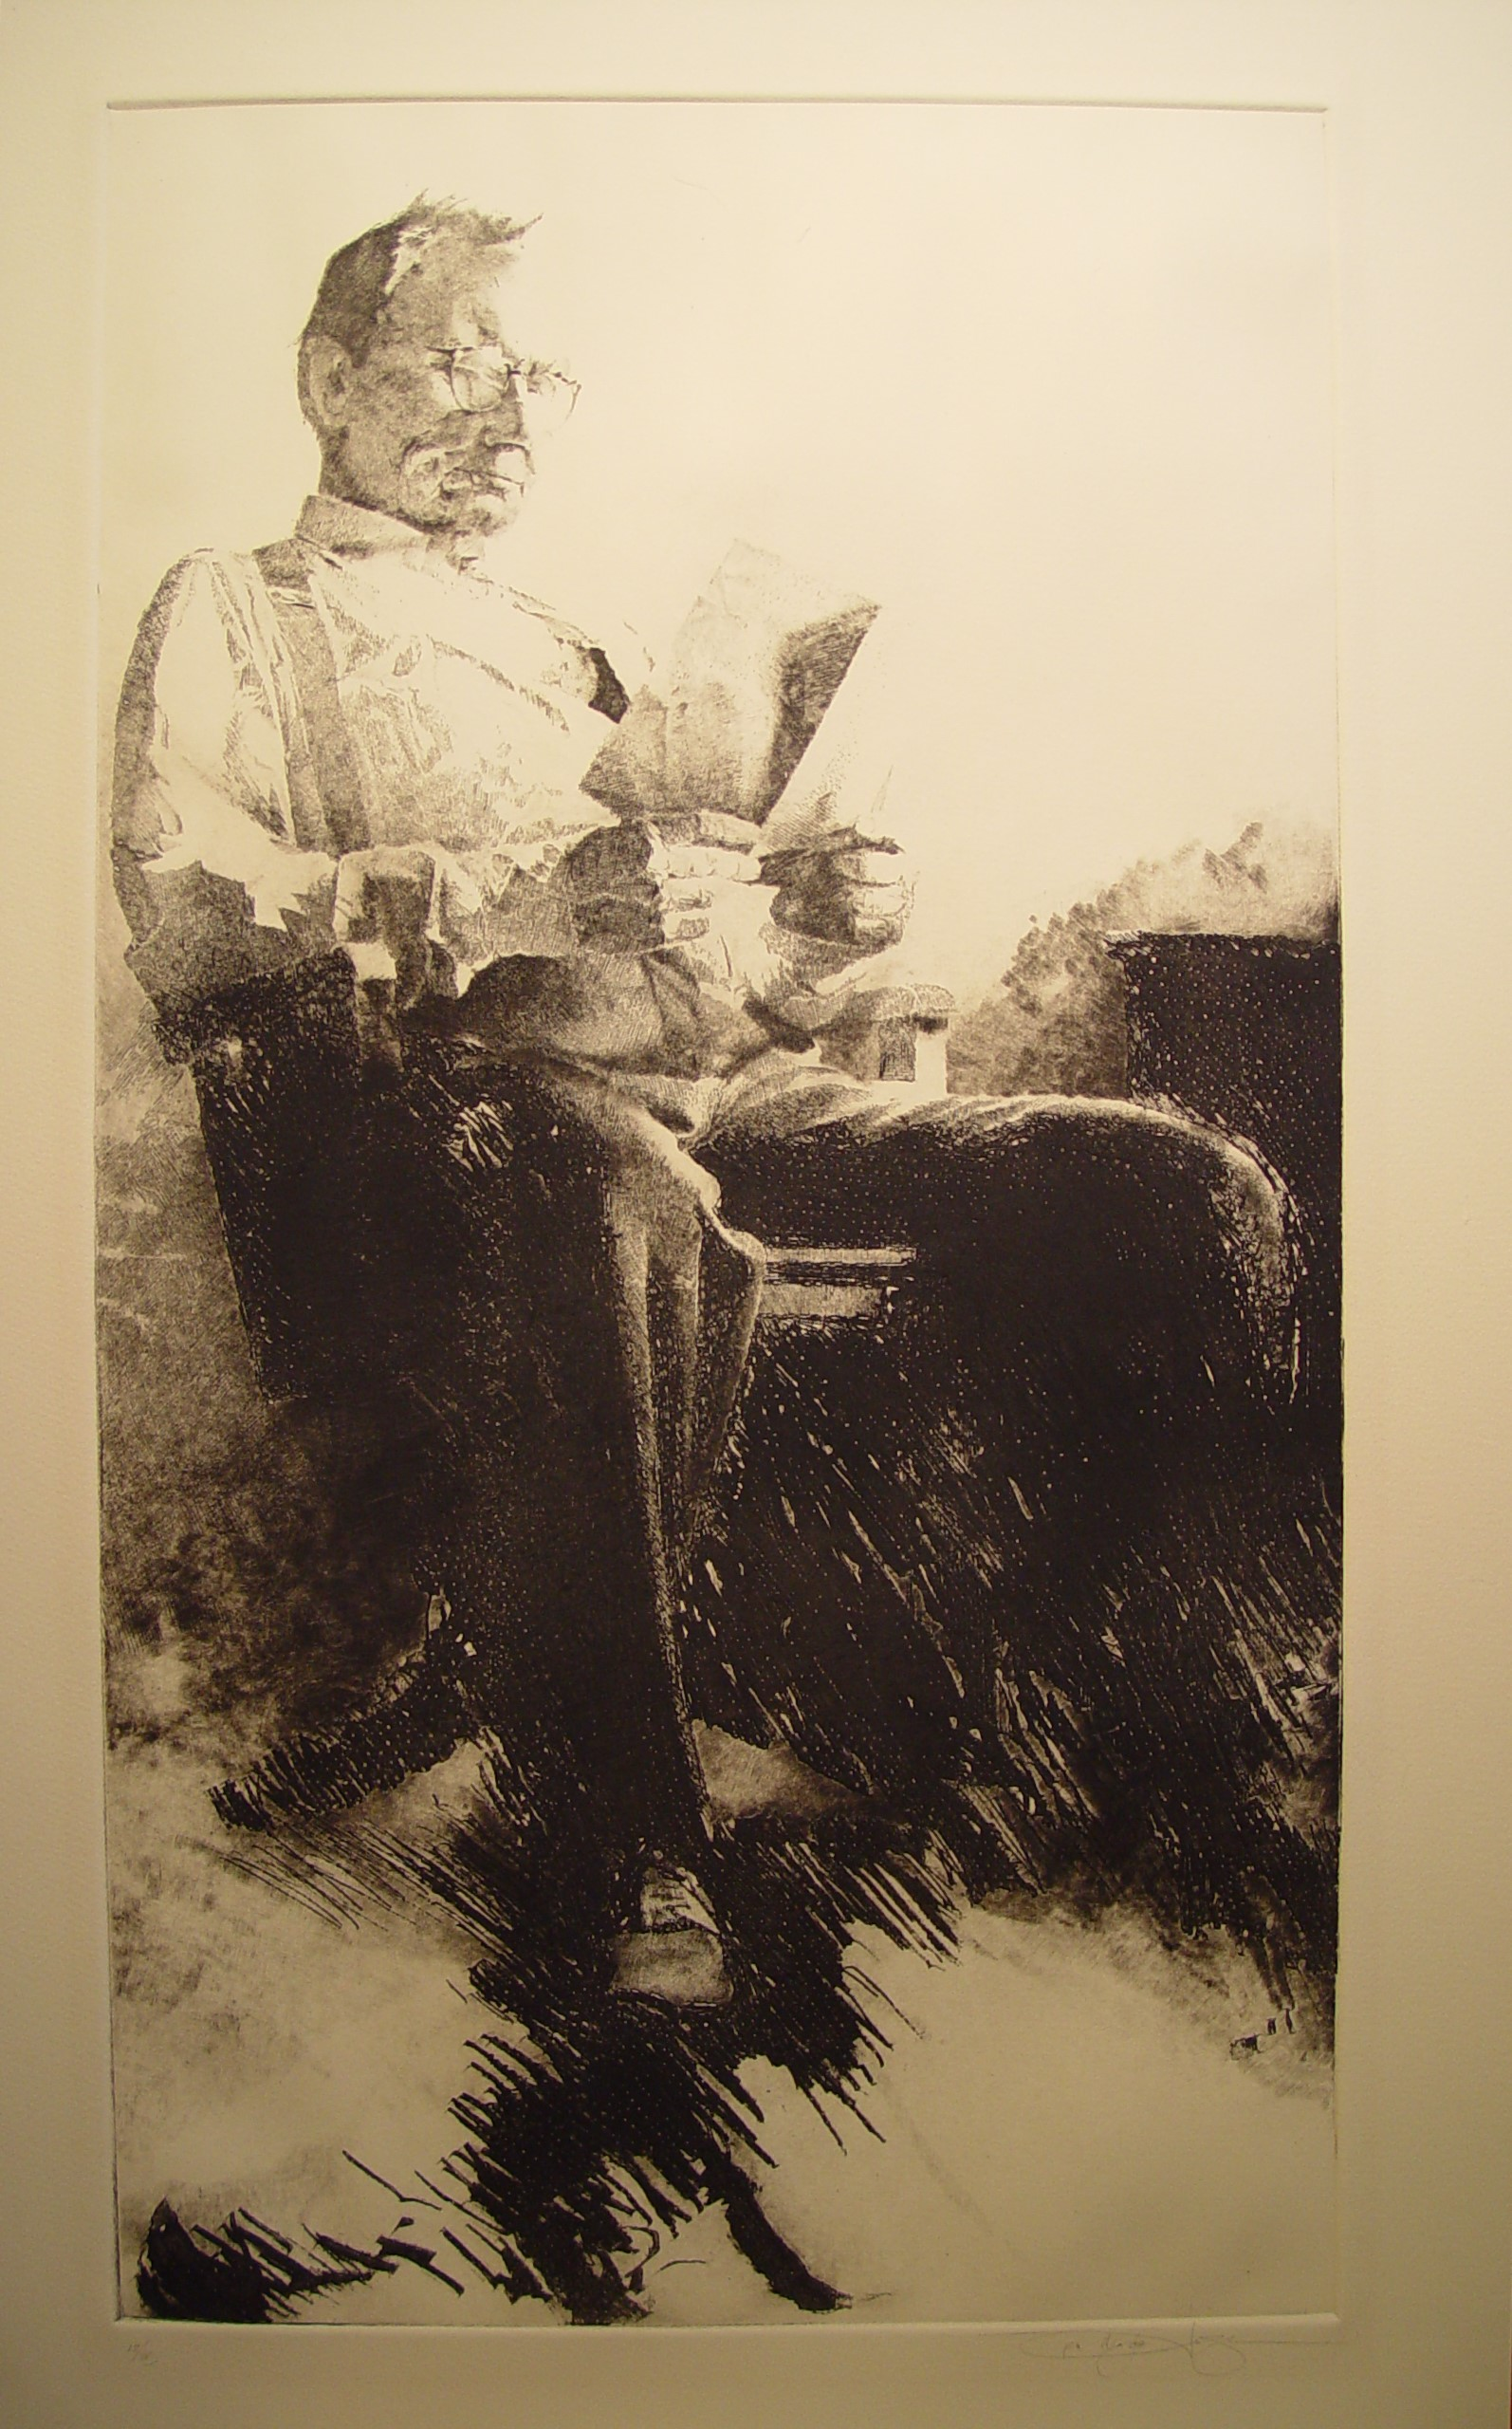 Etching 2. Gadeholts Grandad 2_etching-drypoint__00_23.75x13_plate.jpg